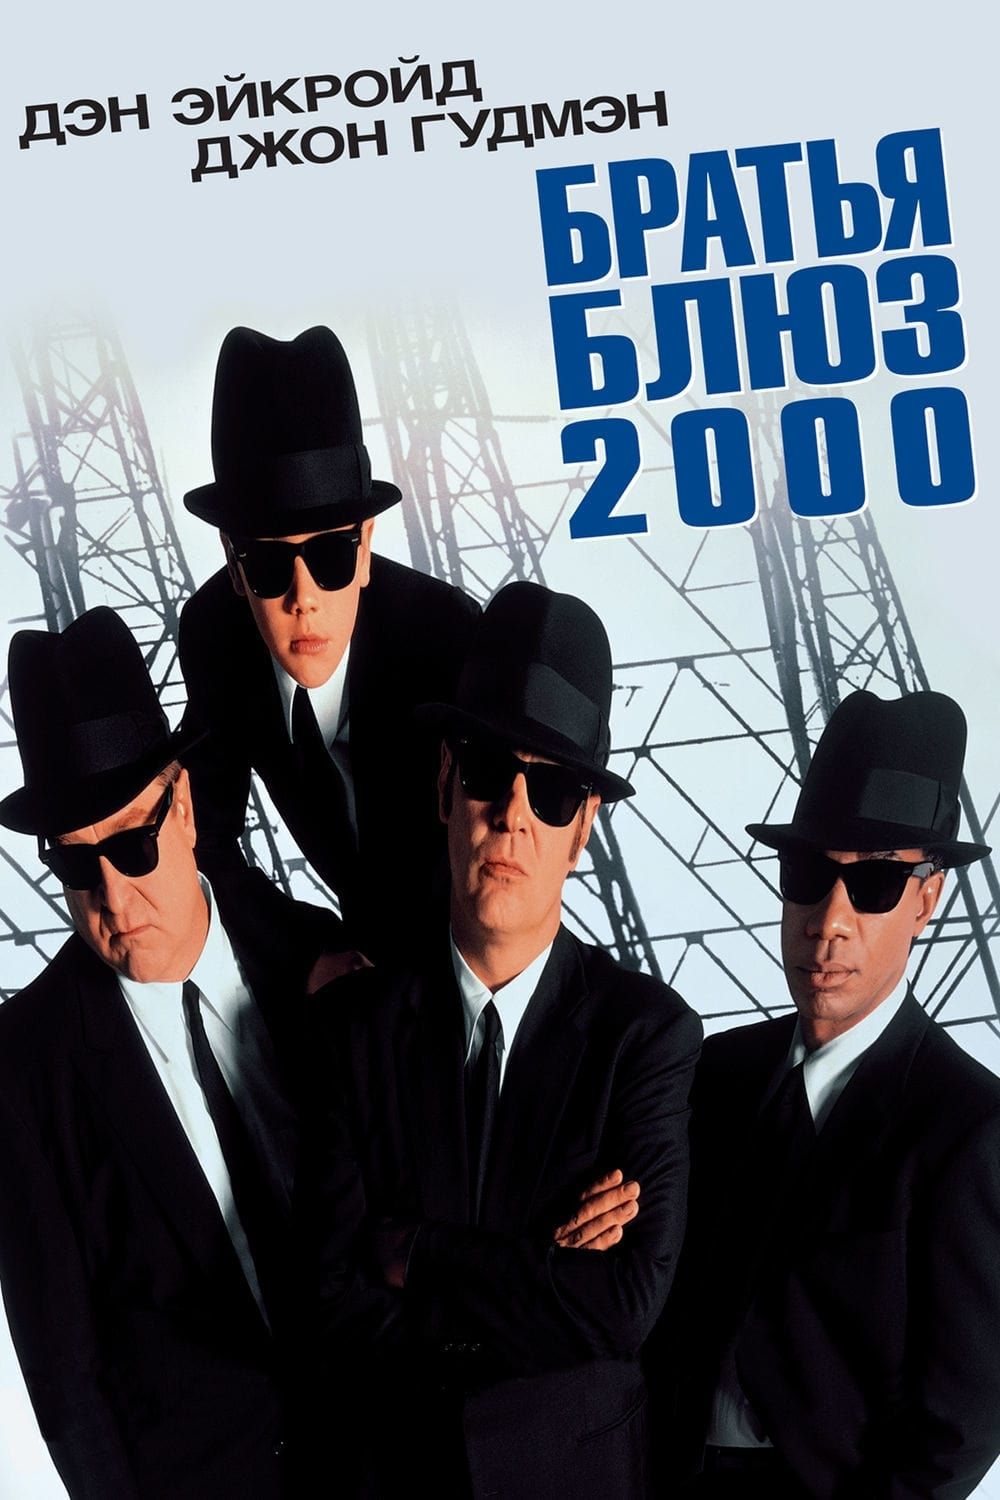 Blues Brothers 2000 1998  IMDb